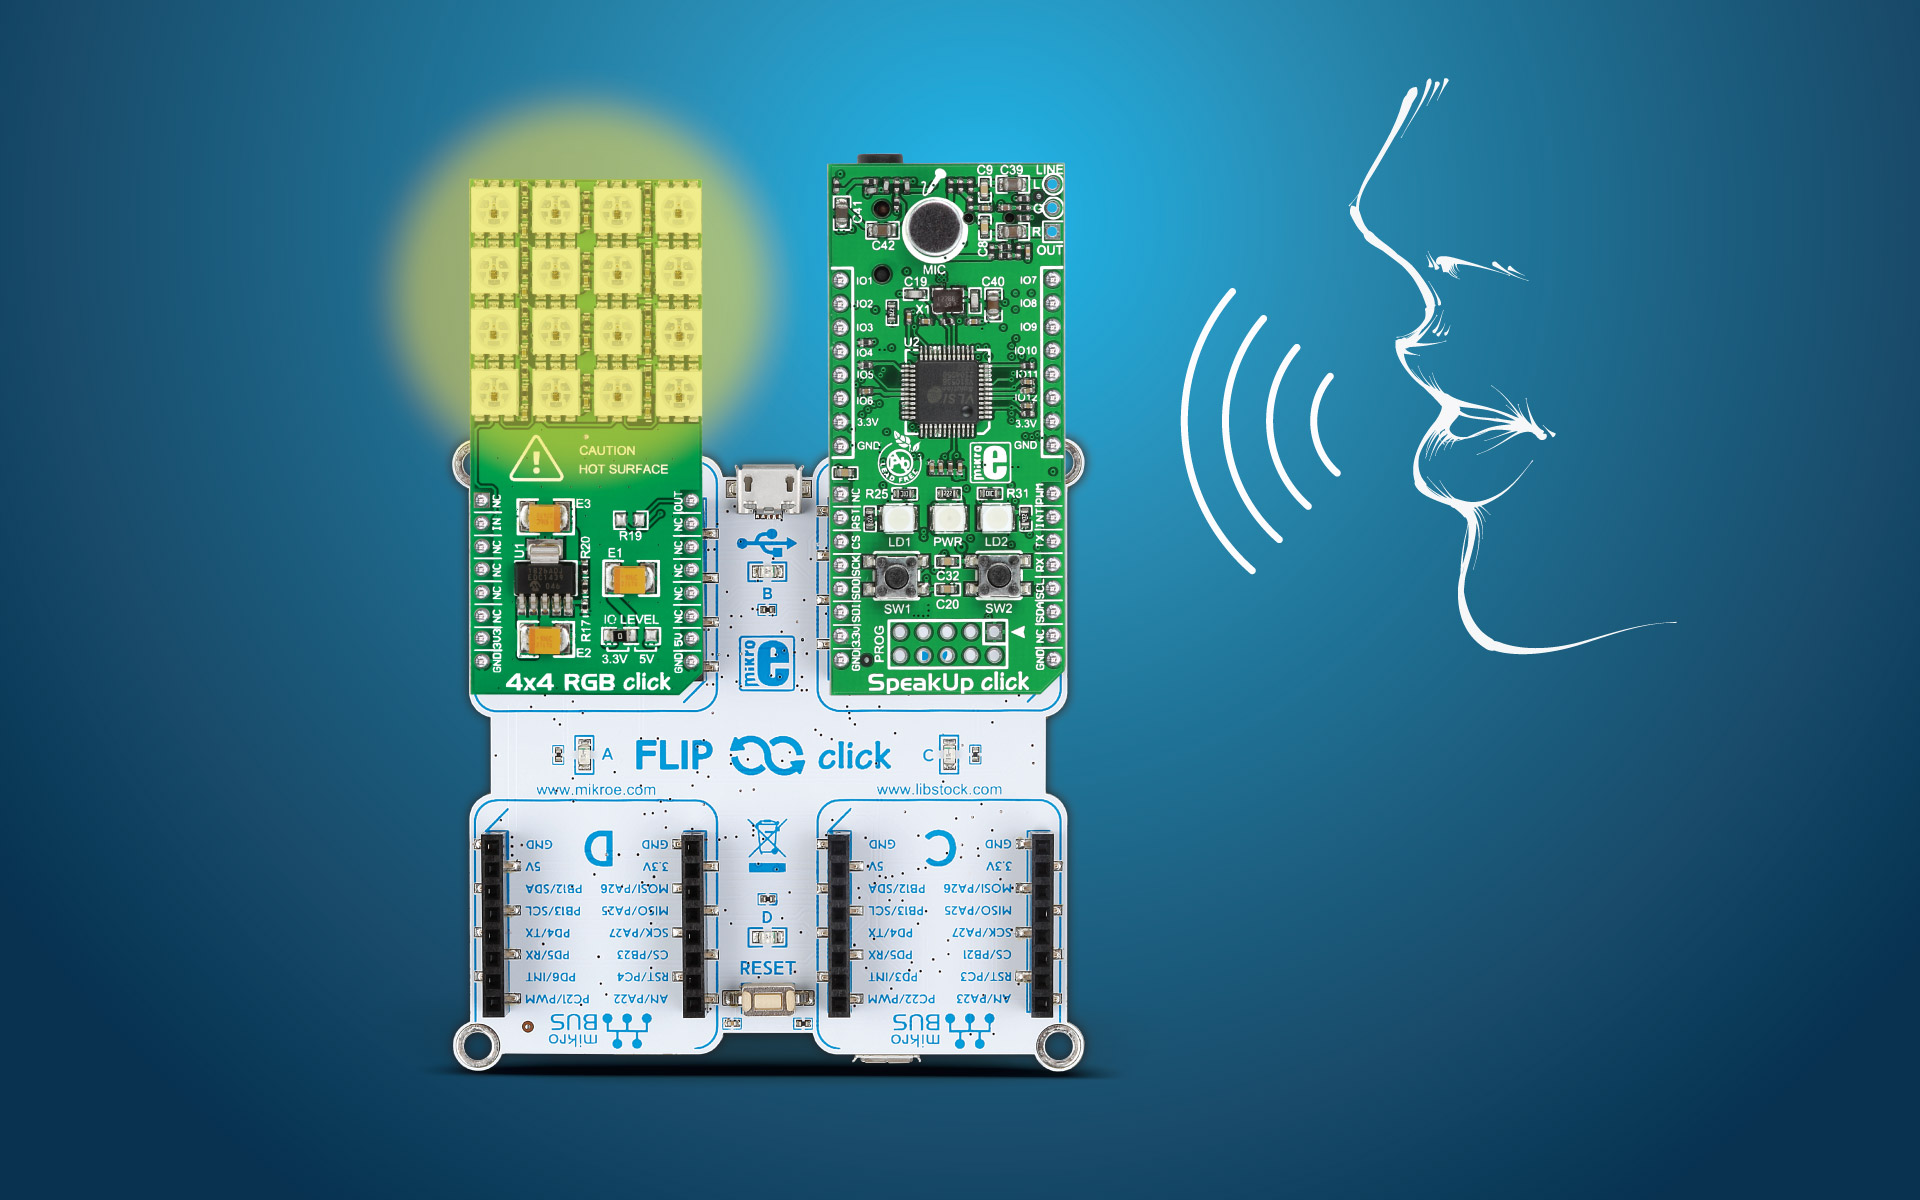 Voice controlled LEDs – Flip&click with SpeakUp click project